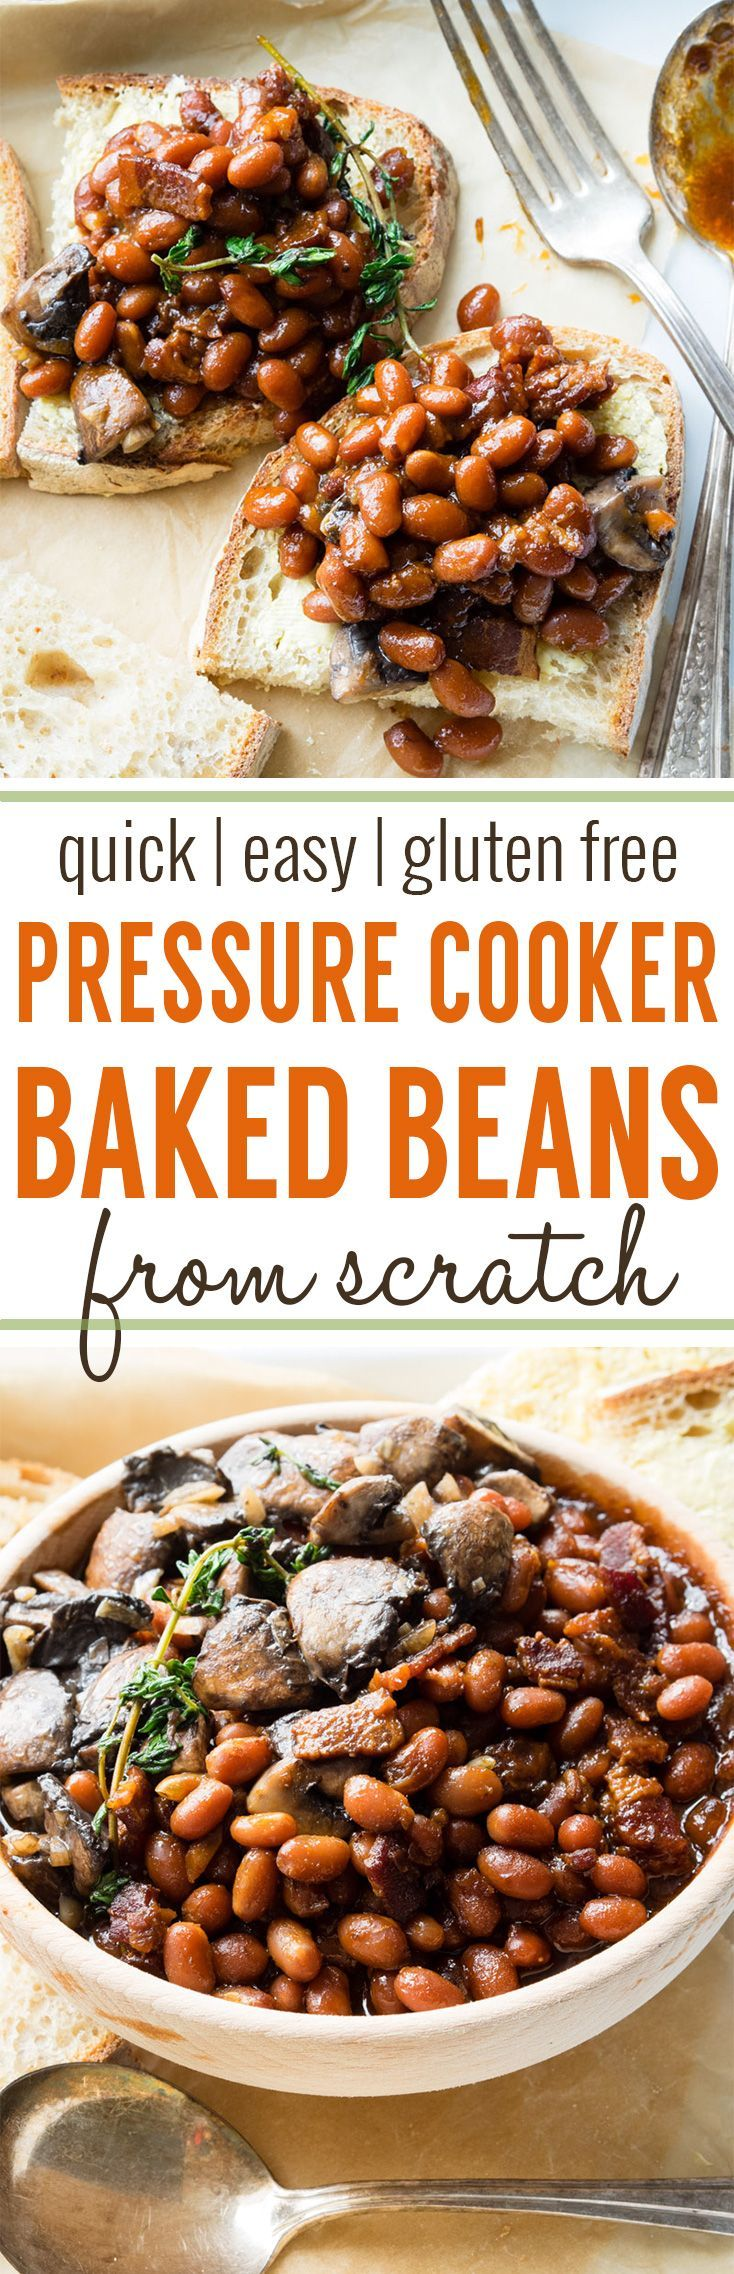 Pressure Cooker Baked Beans (GF) - easy, quick and made from scratch! Make a pot of Pressure Cooker Baked Beans, have it for dinner, and the next morning, serve it on toast at breakfast. With this recipe, you can make baked beans in less than 1 hour. #pre